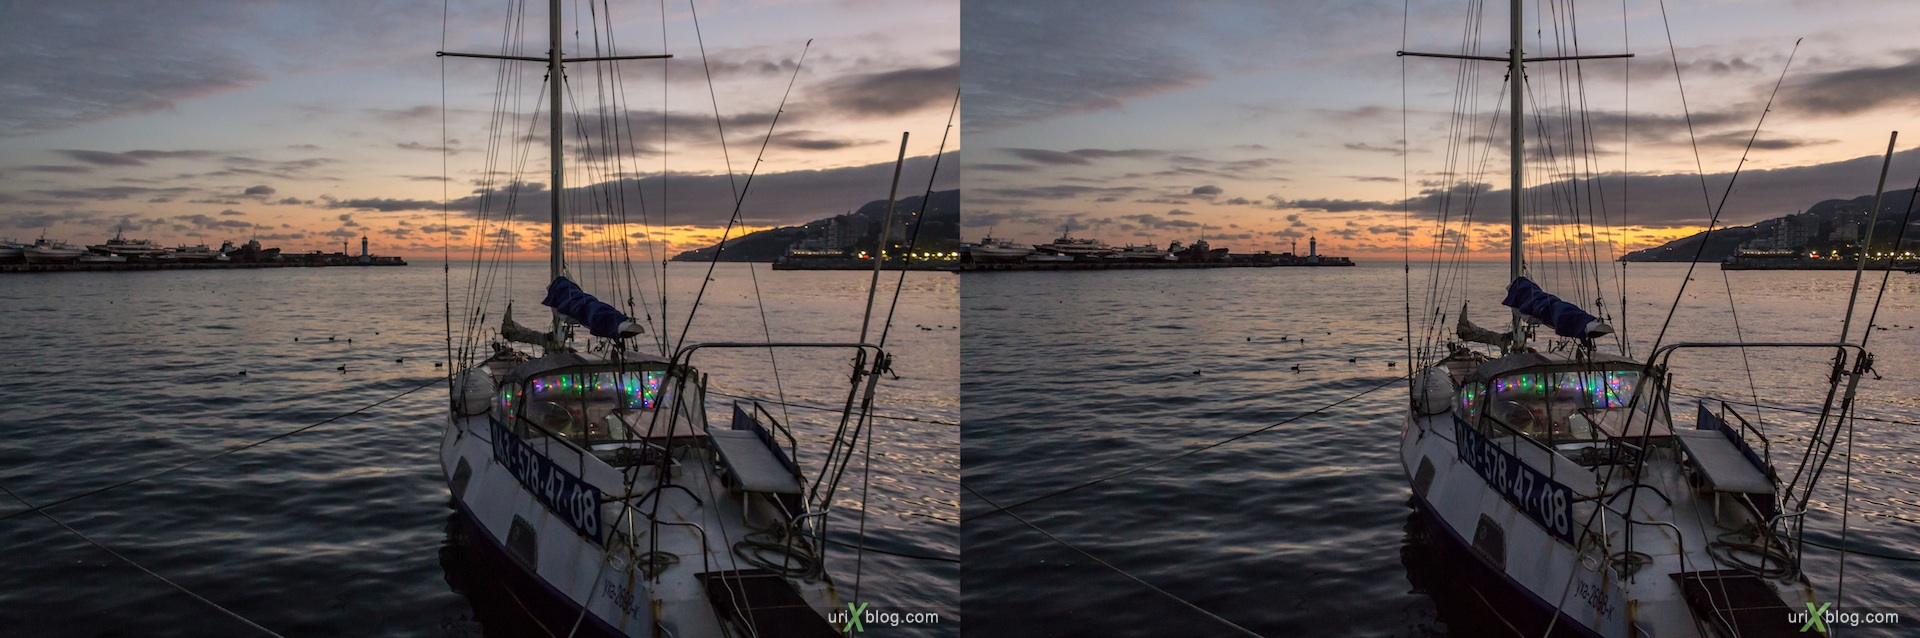 2012, Imeni Lenina embankment, yacht, sunset, new year, holiday, lights, Yalta, sea, evening, coast city, Crimea, Ukraine, 3D, stereo pair, cross-eyed, crossview, cross view stereo pair, stereoscopic